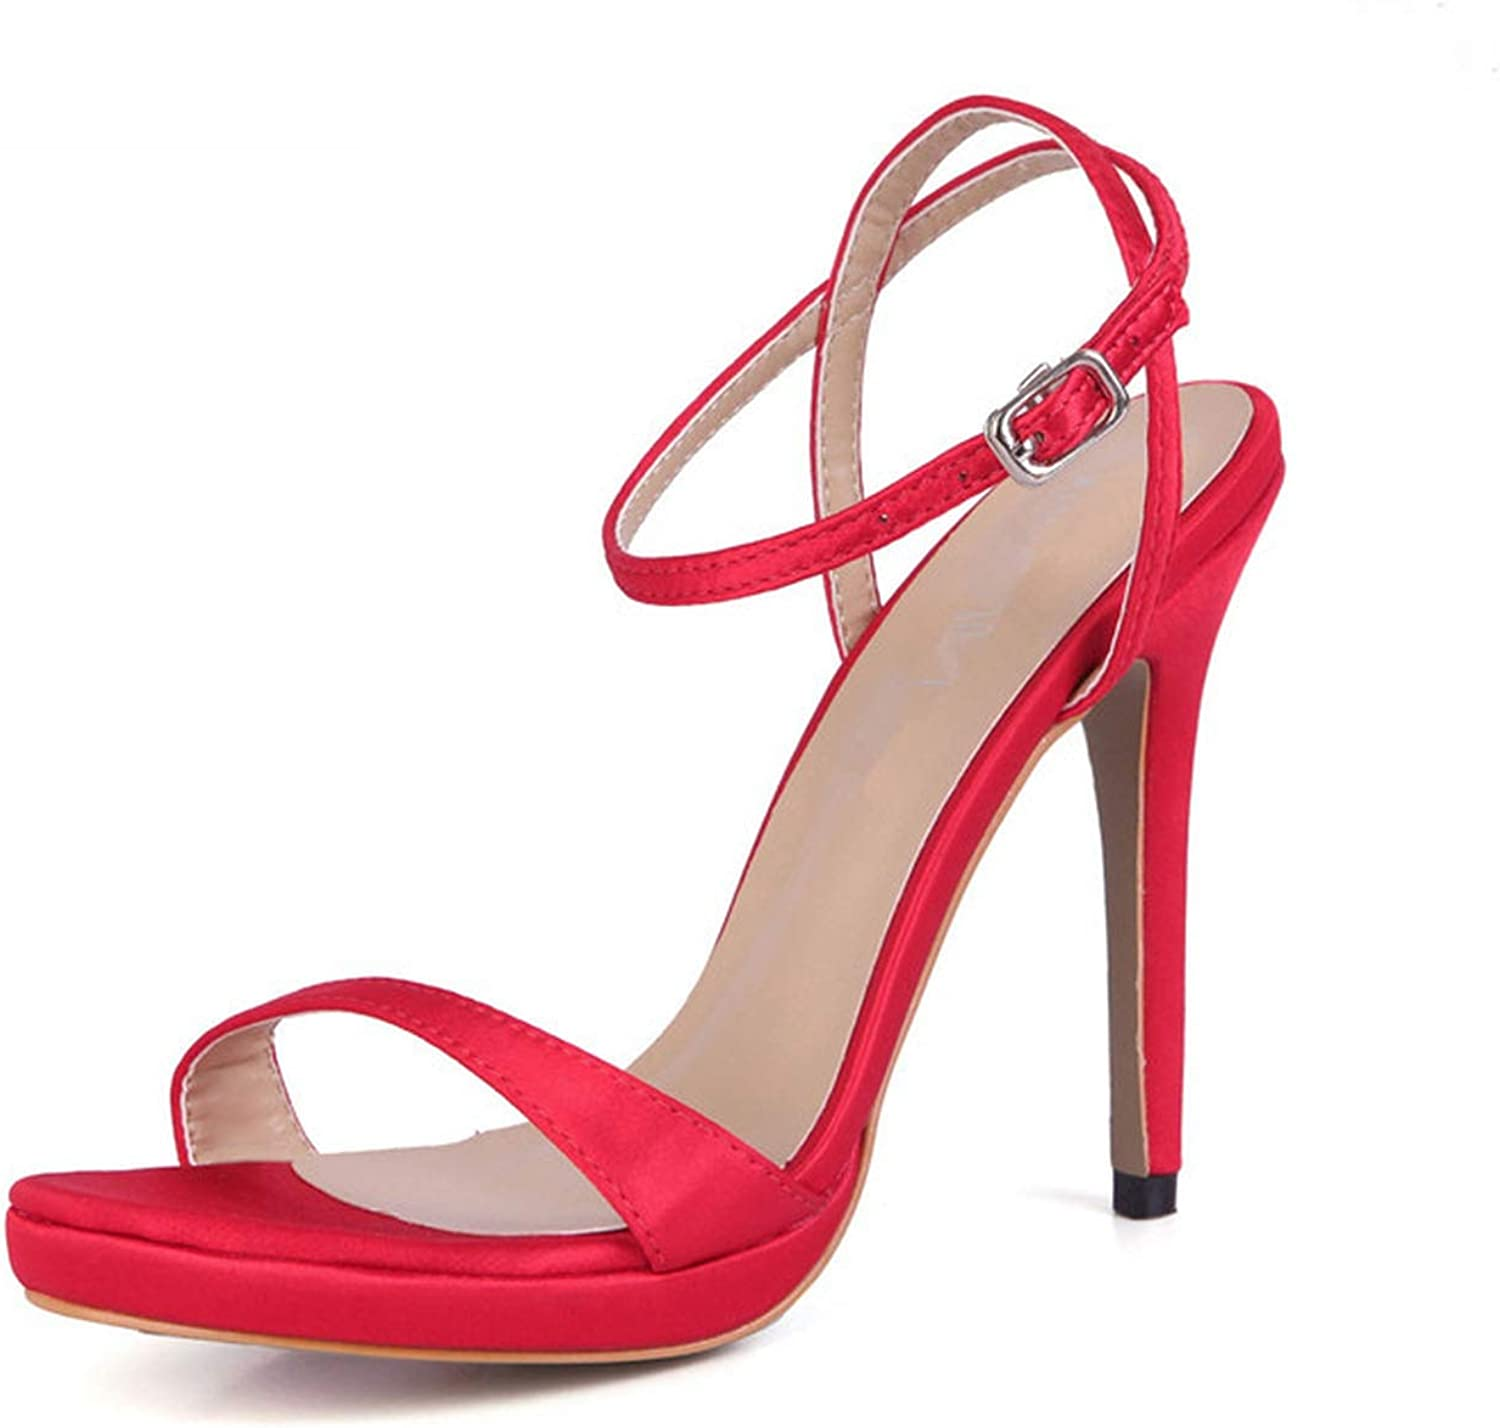 Summer Sexy Sandals 12 cm High Heels Ankle Strap shoes Woman RED Party Pumps